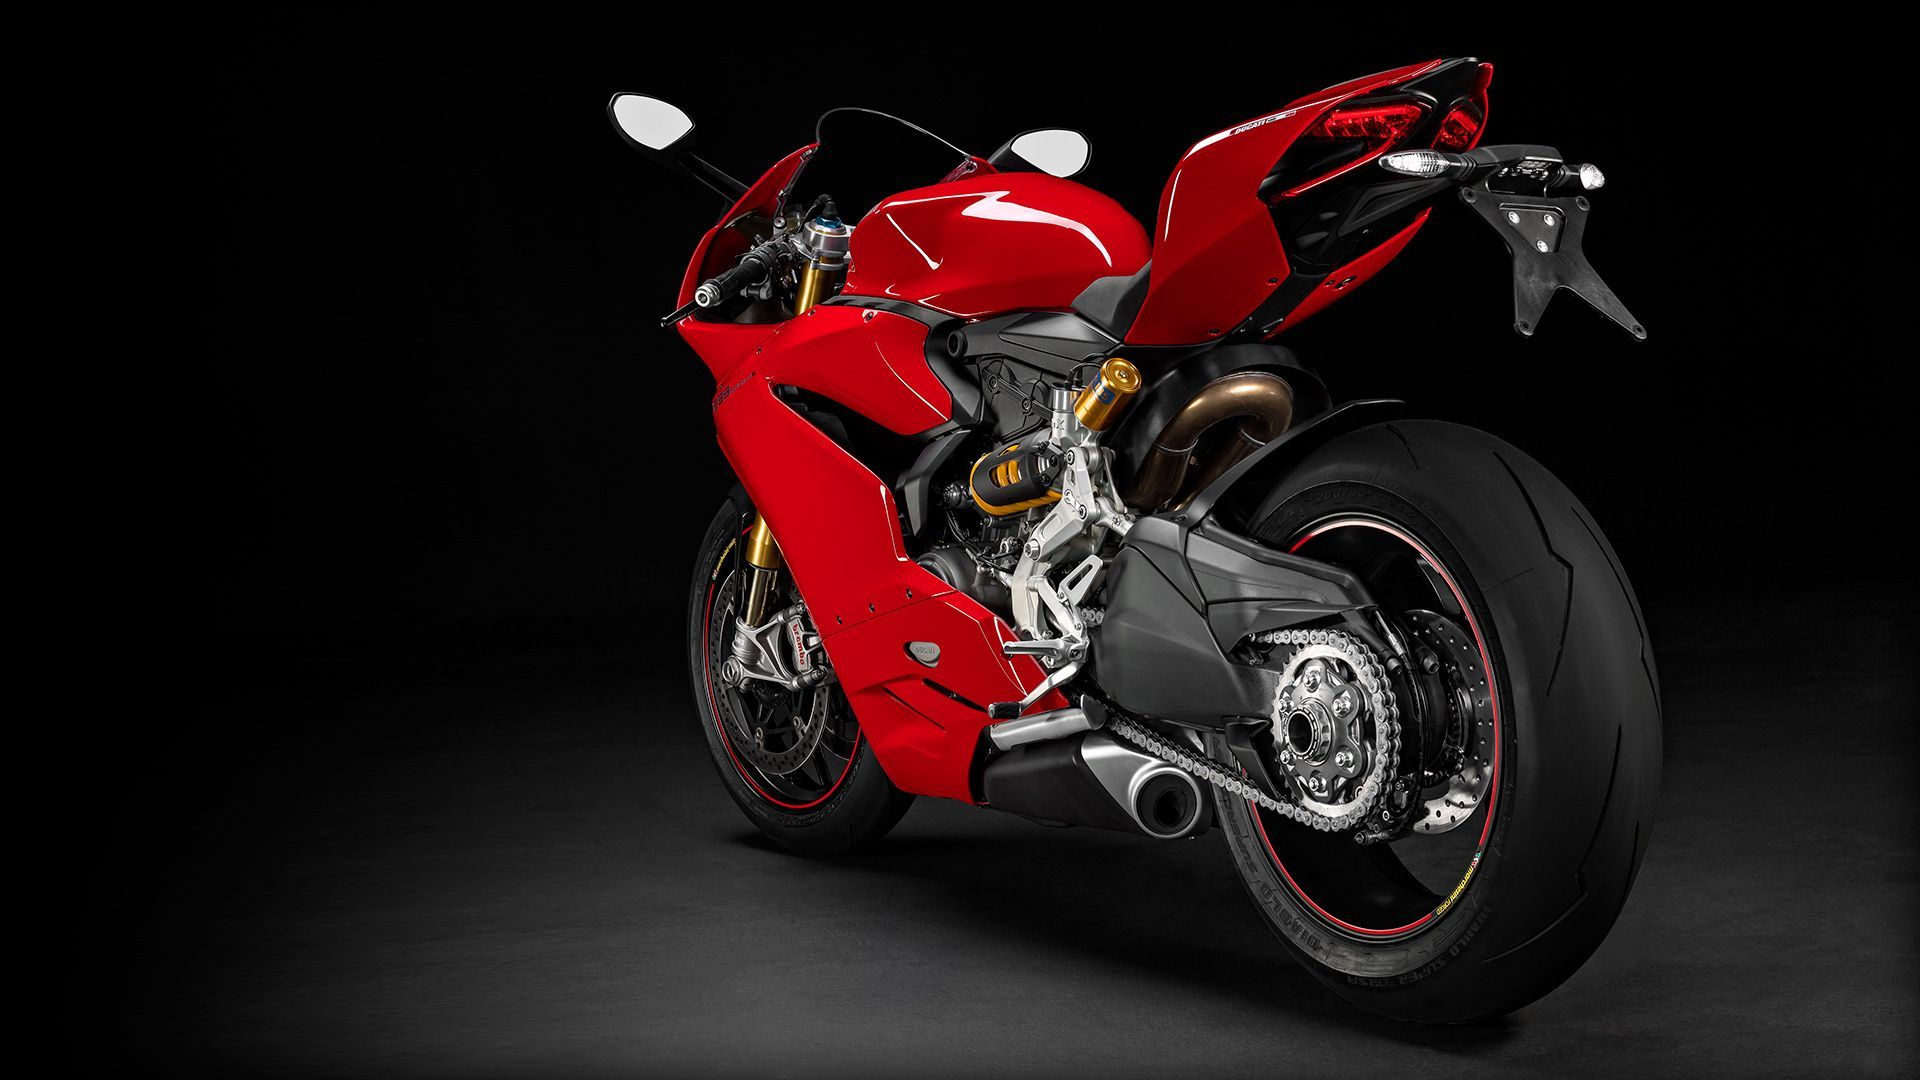 2015 Ducati 1299 Panigale S | 1299 Panigale S - Rear Angled Shot